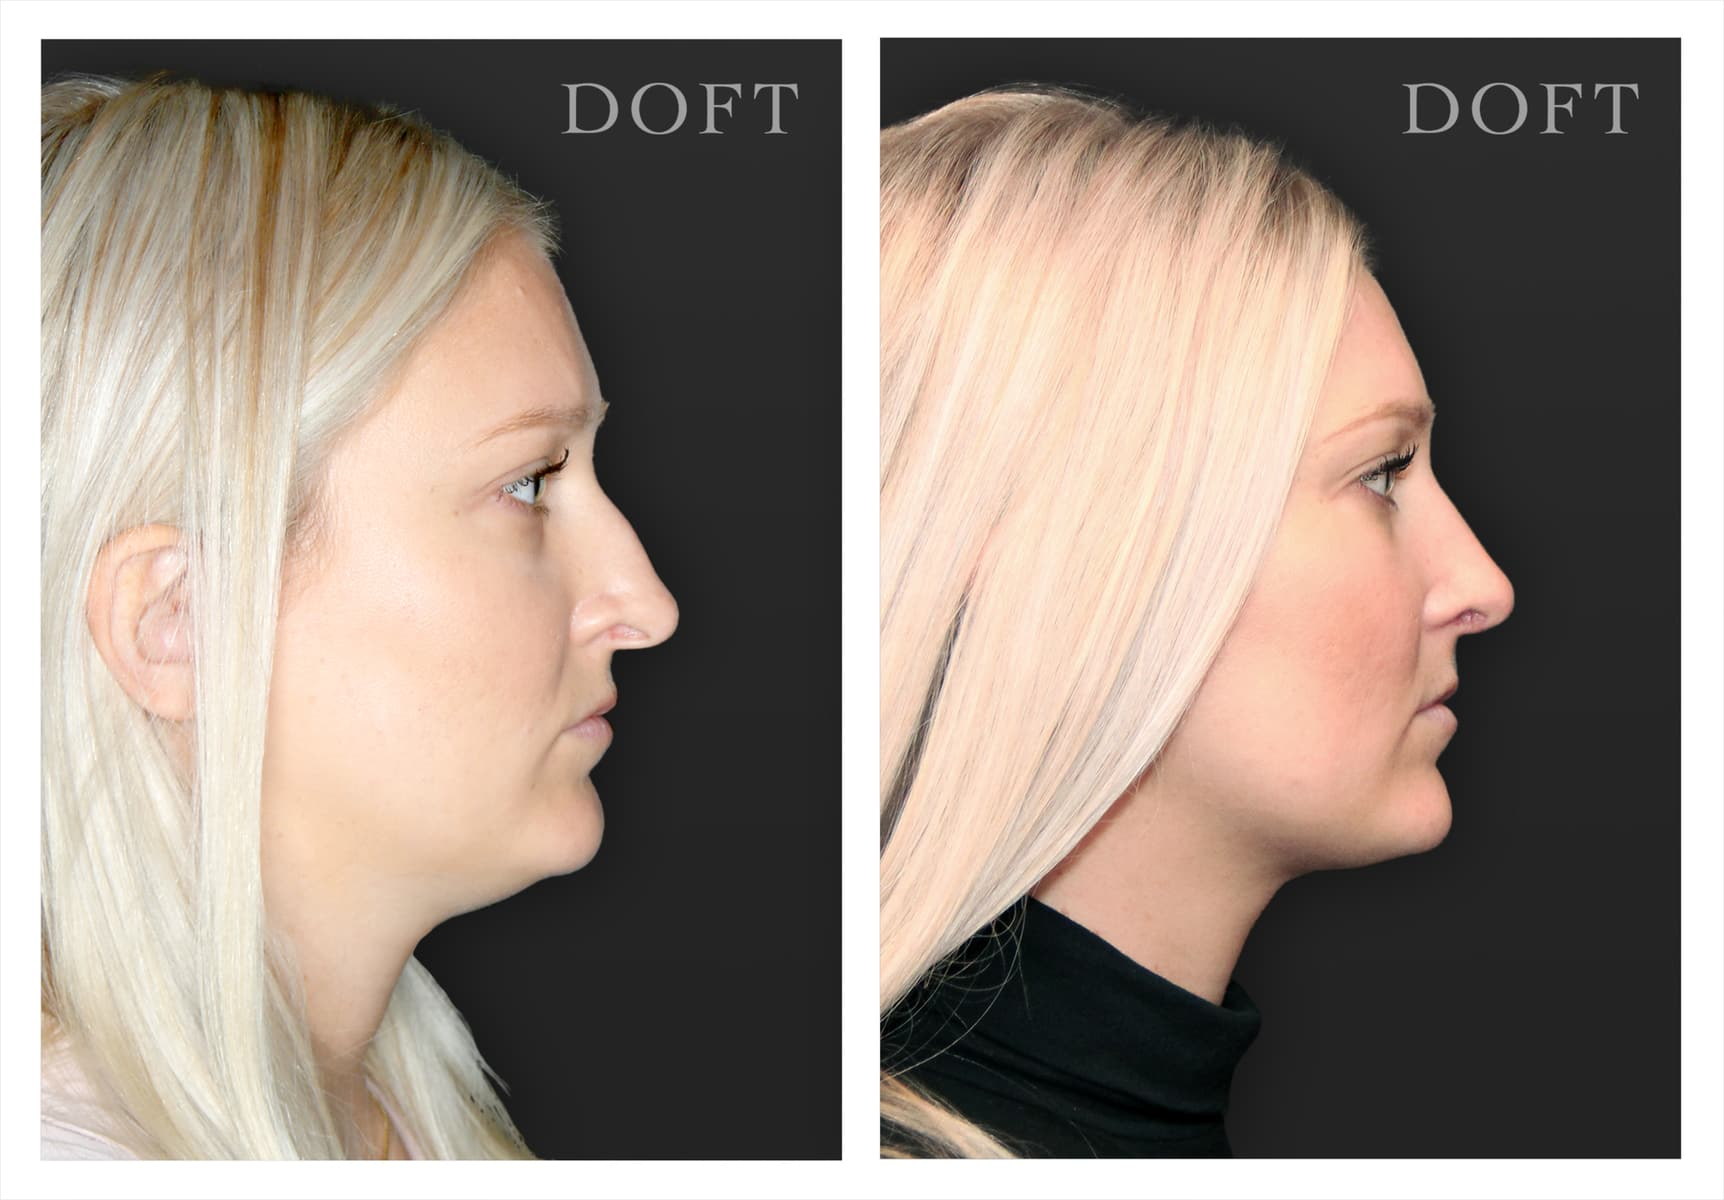 Nose Job (Rhinoplasty) • Doft Plastic Surgery